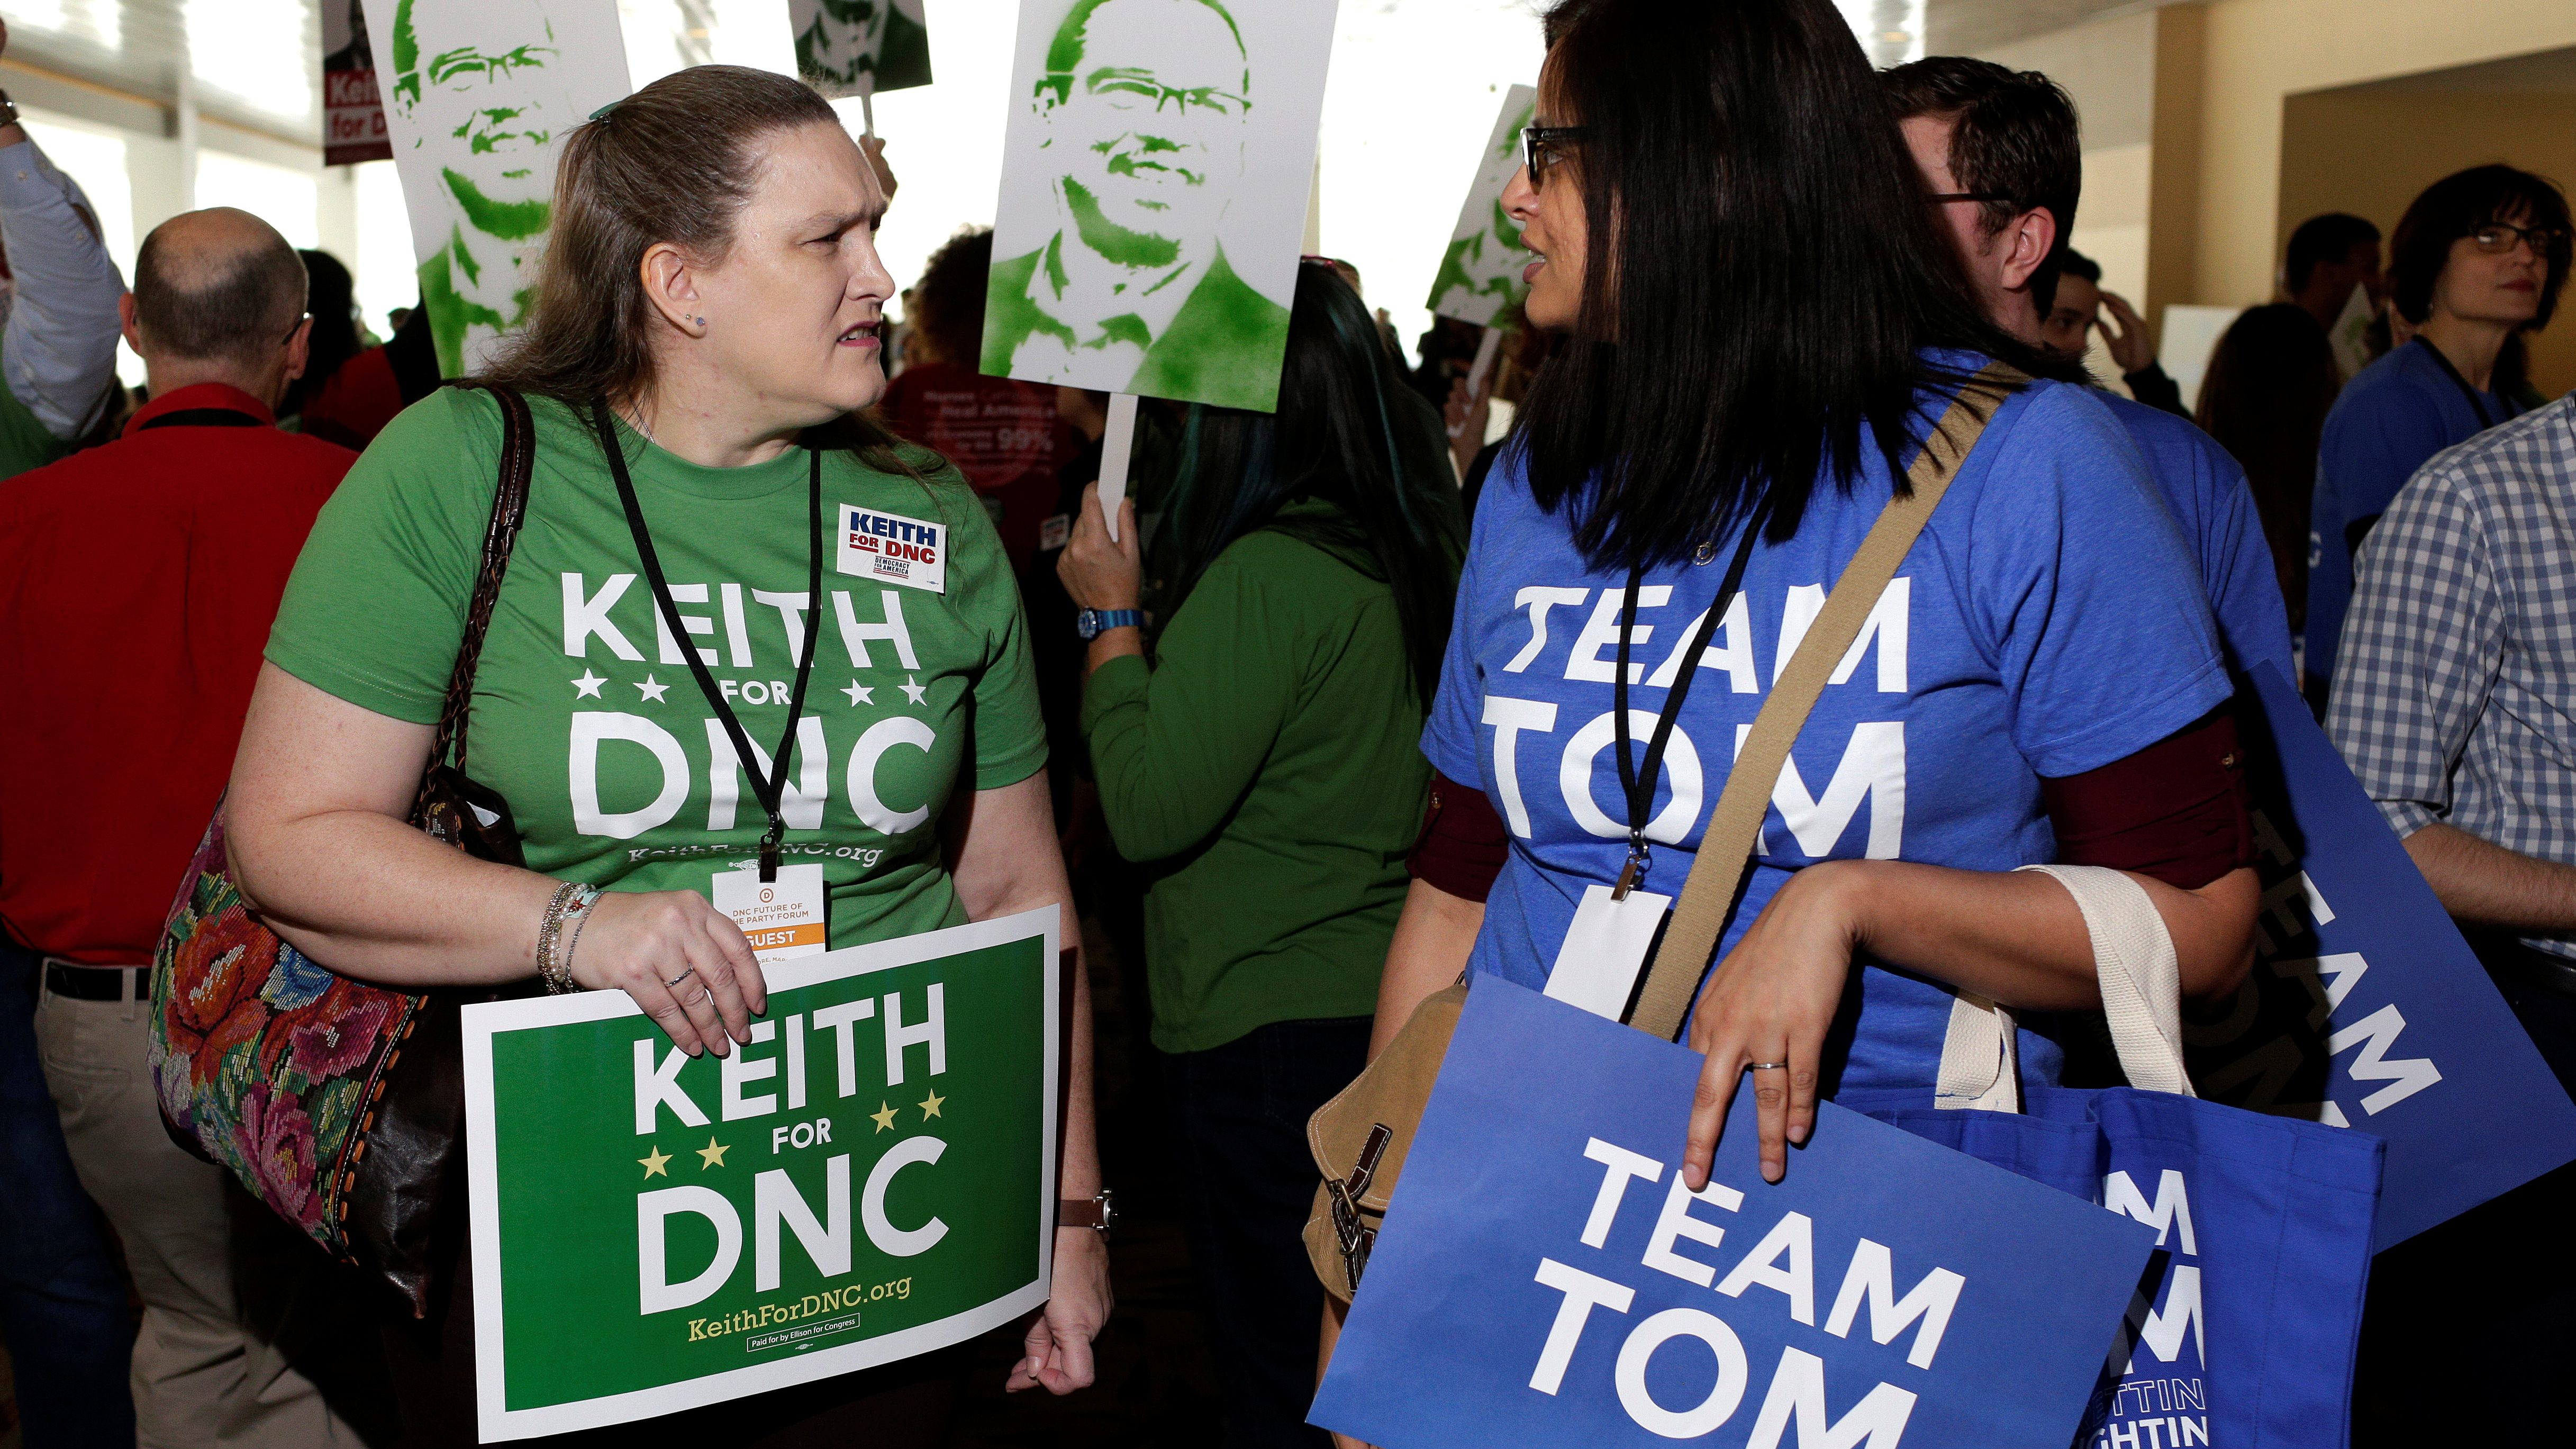 Supporters of Rep. Keith Ellison and former Secretary of Labor Tom Perez, candidates for Democratic National Committee Chairman, speak to each other during a Democratic National Committee forum in Baltimore, Maryland